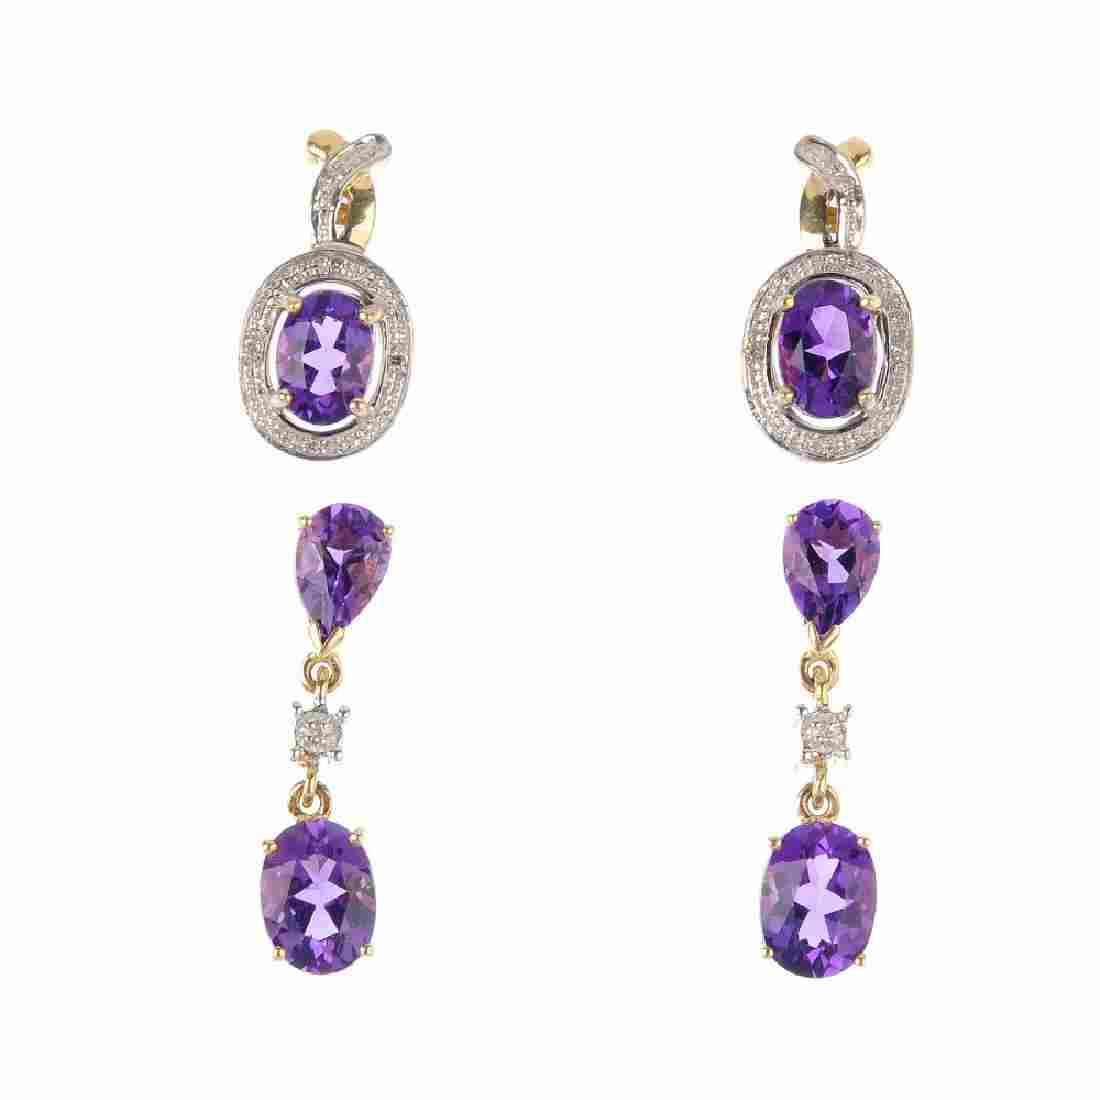 Two pairs of 9ct gold amethyst and diamond earrings. To